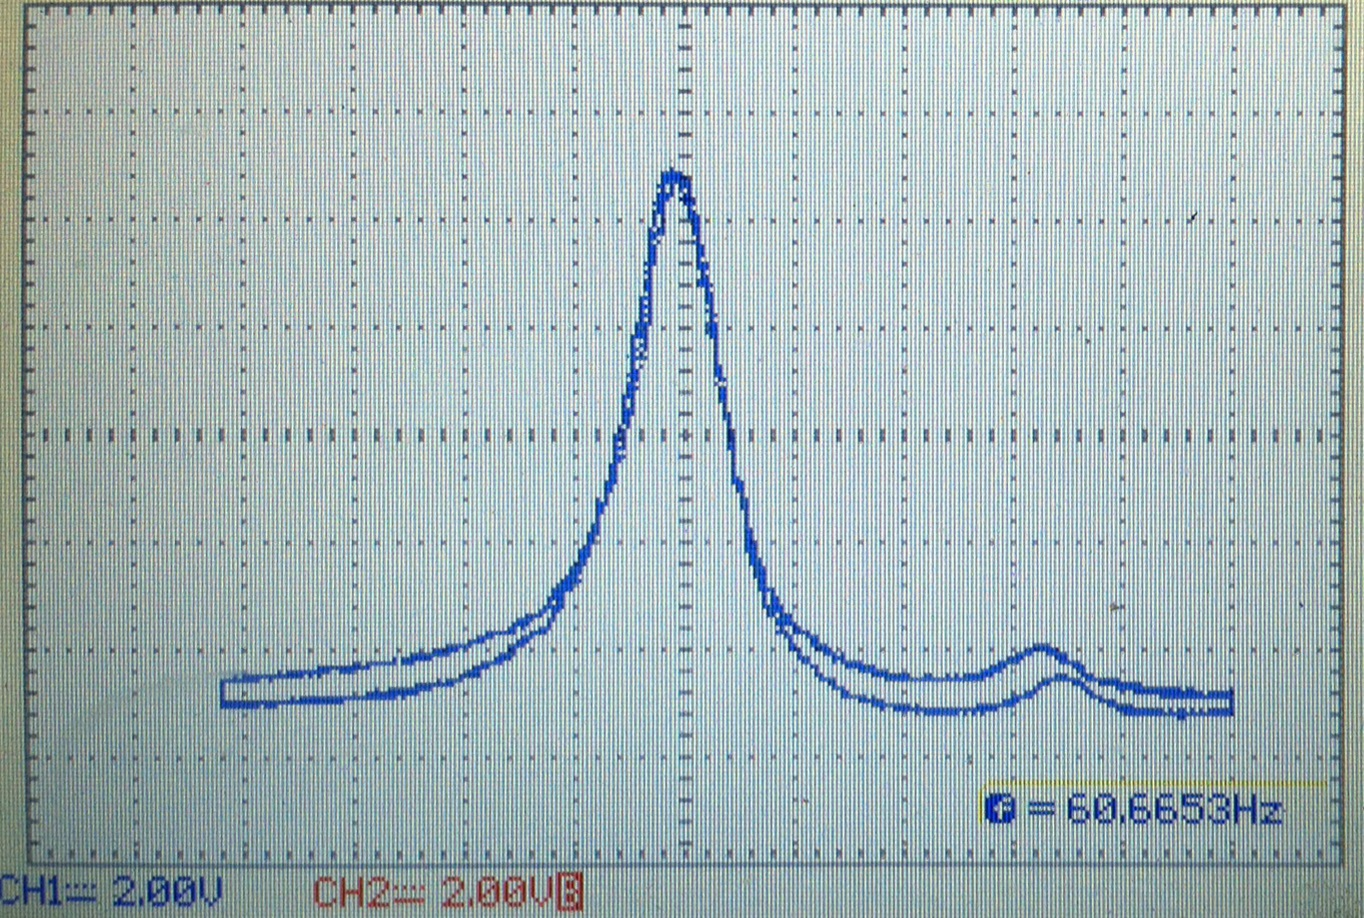 Magnetic resonance signal on oscilloscope (X-Y mode).jpg